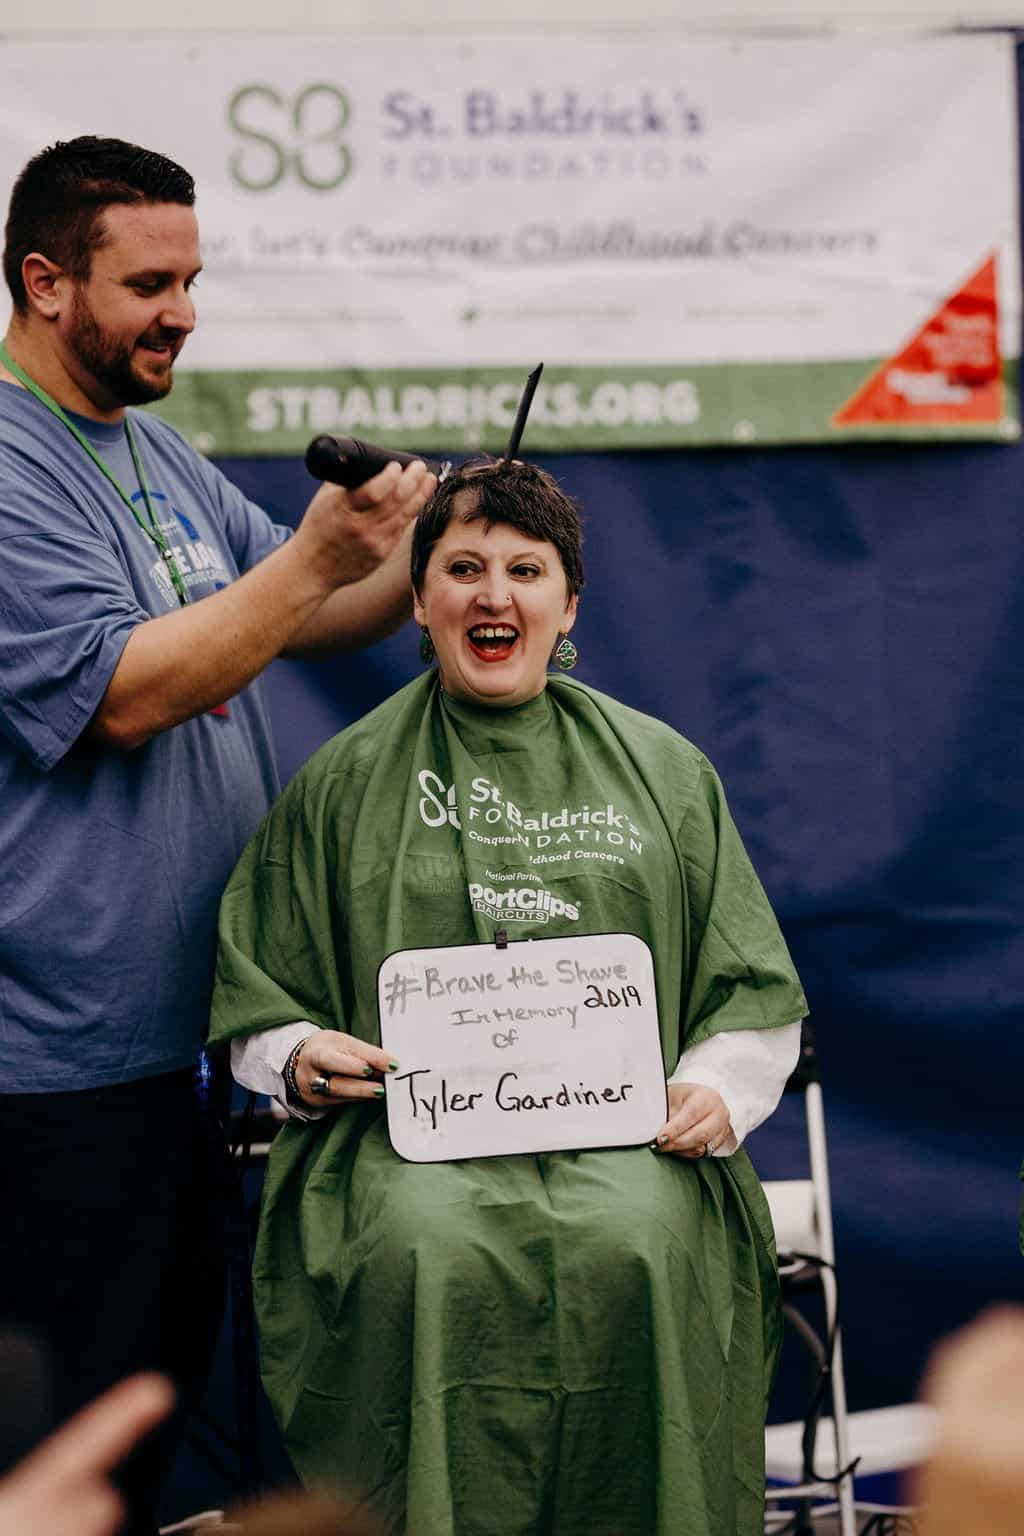 St. Baldricks | I bet you wouldn't shave your head 122